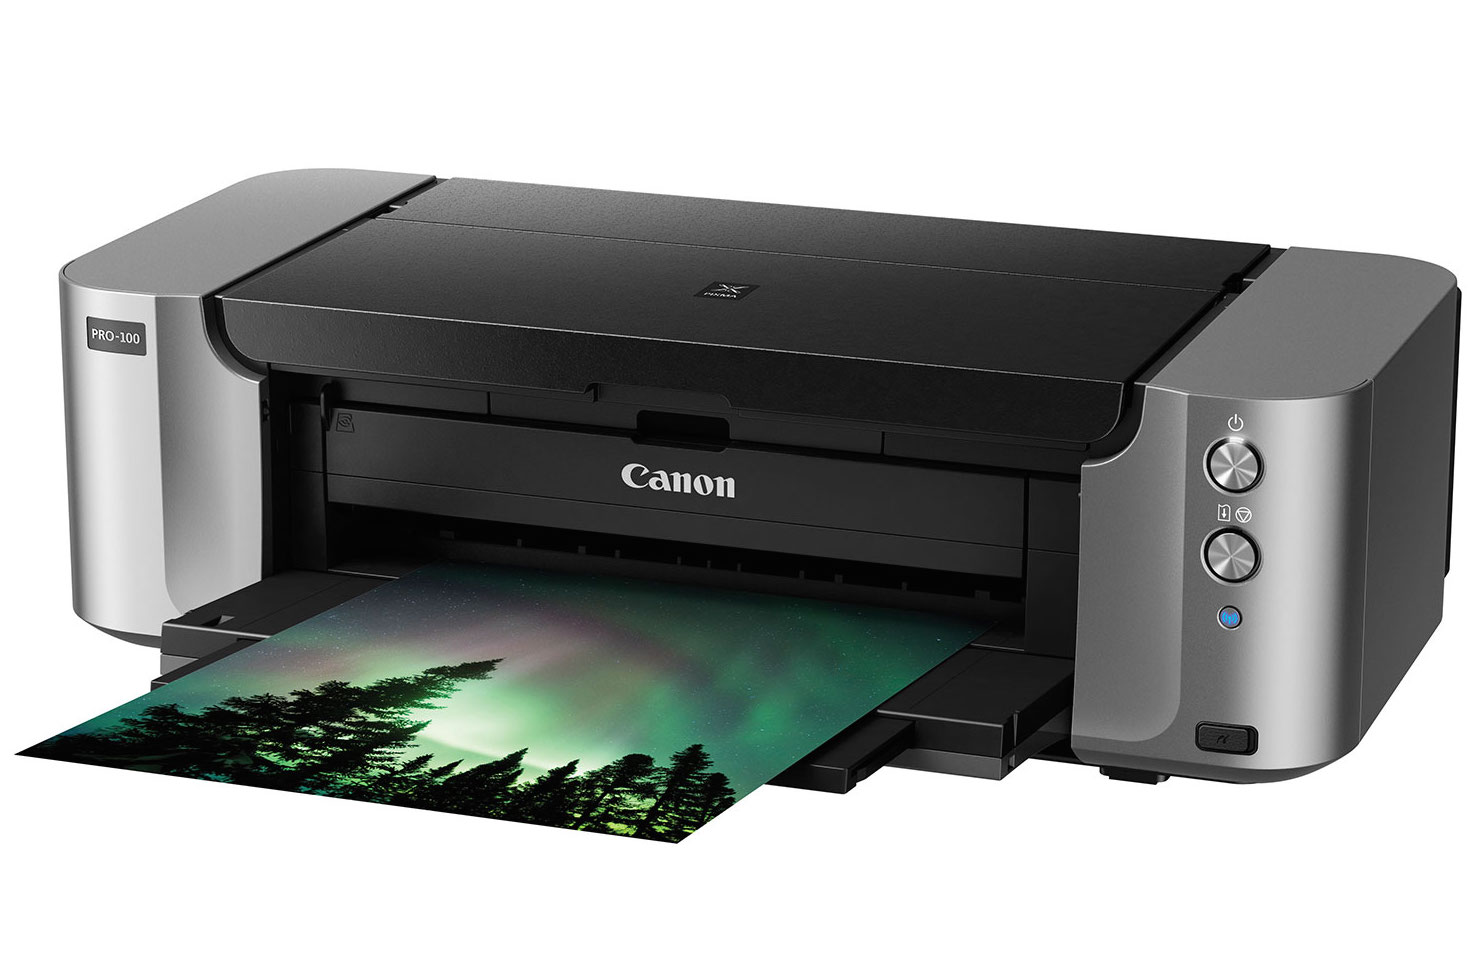 printer buying guide - canon pixma photo printer